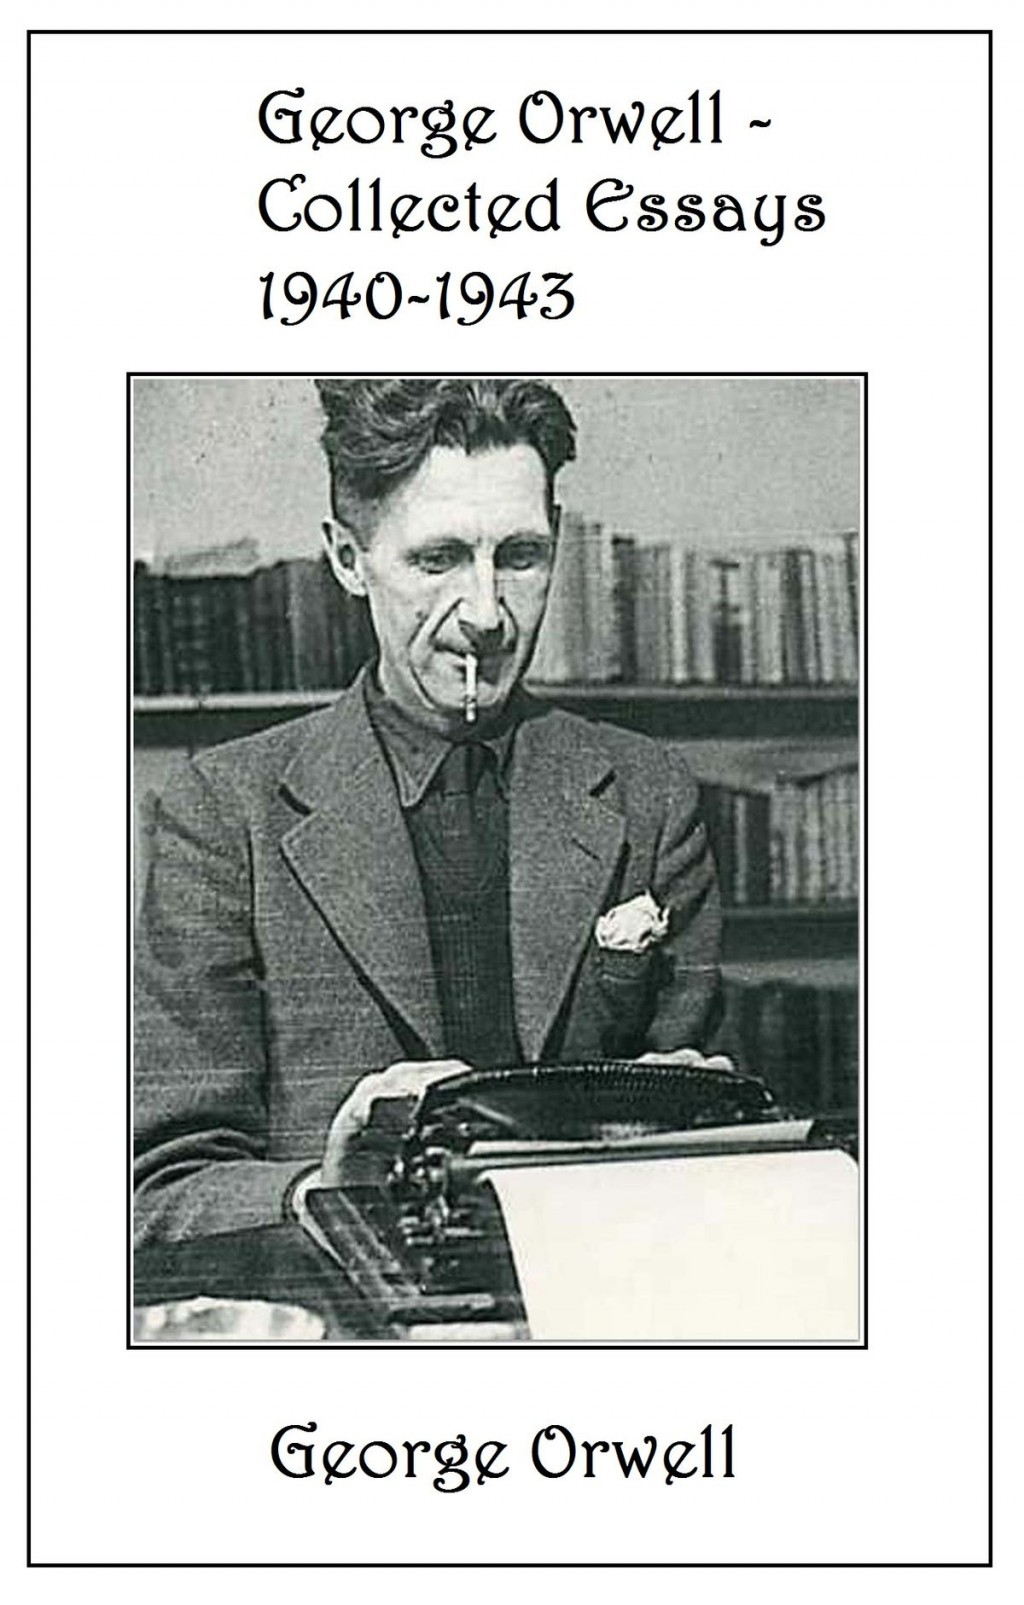 002 George Orwell Collected Essays Essay Frightening Everyman's Library Summary Bookshop Memories Large